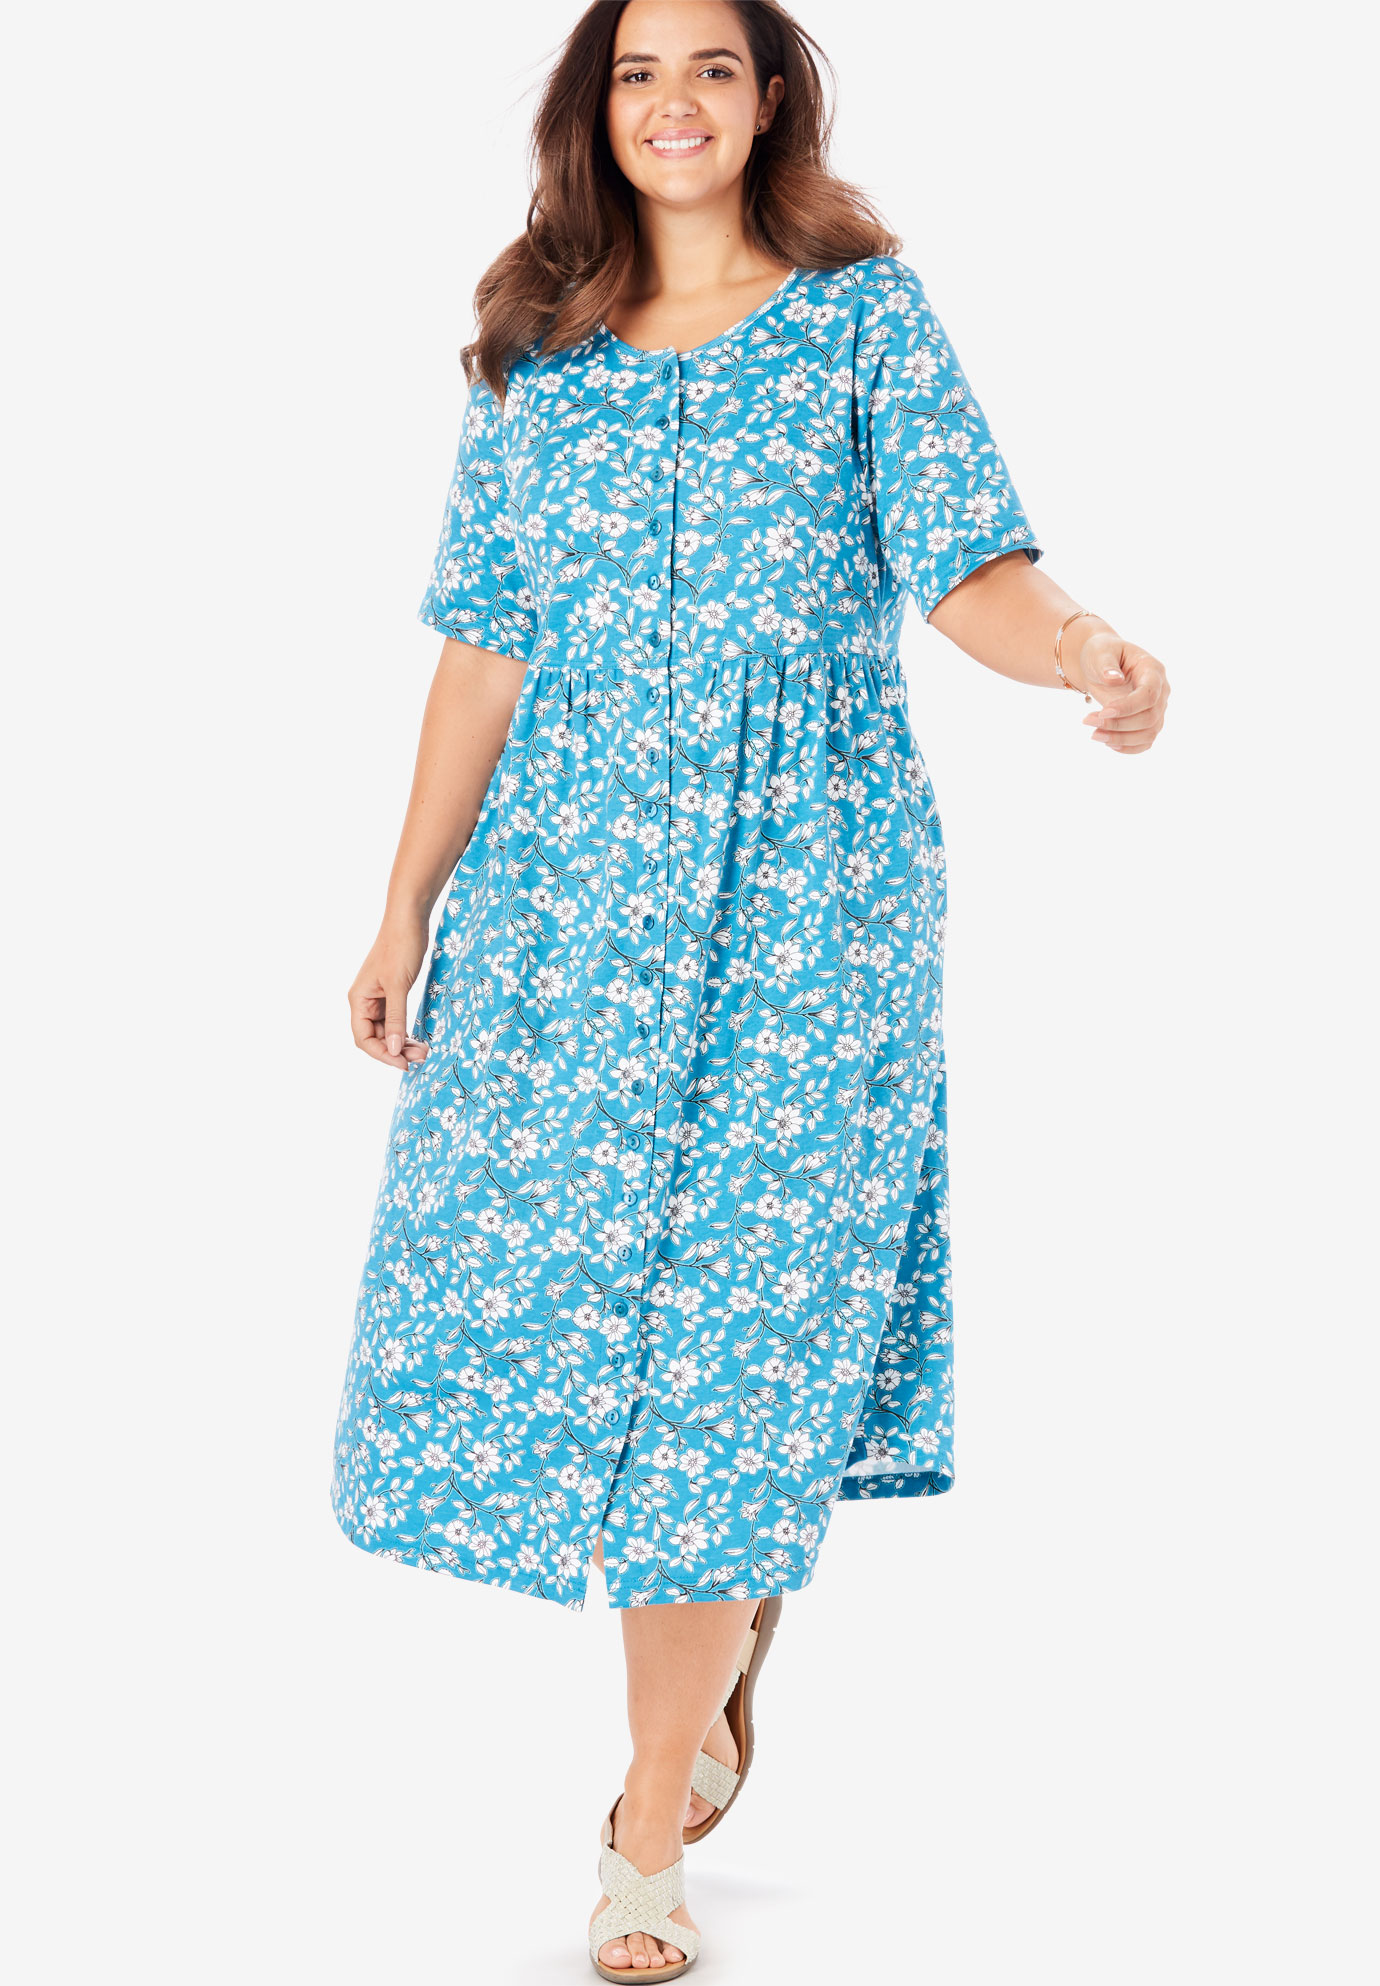 Button-Front Essential Dress| Plus Size Casual Dresses | Full Beauty